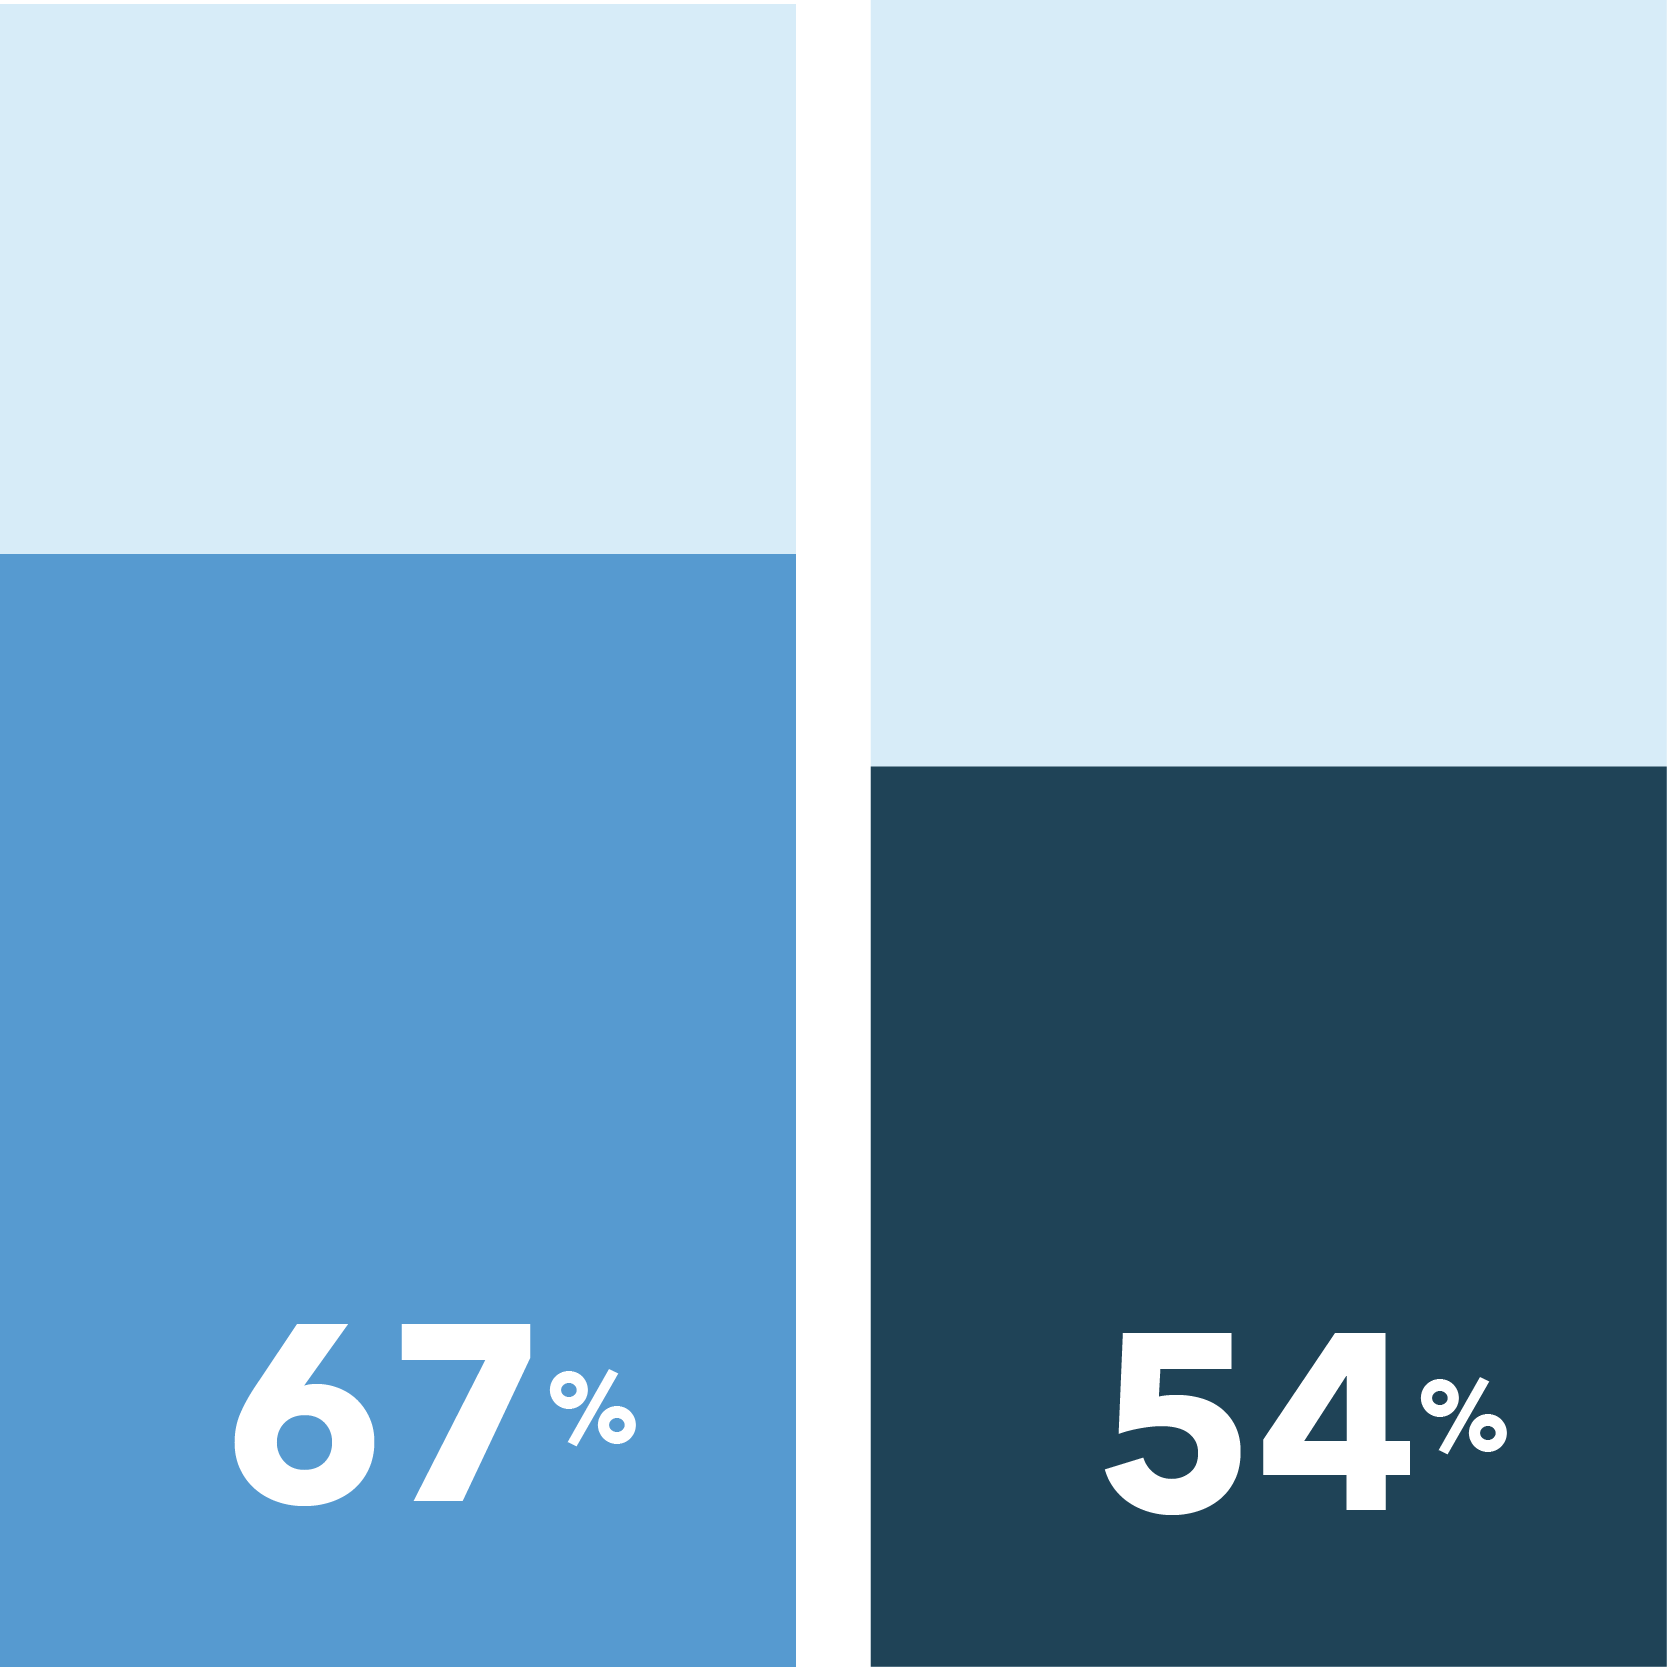 67% of Women vs. 54% of Men say the ability to meet with a study doctor remotely is important